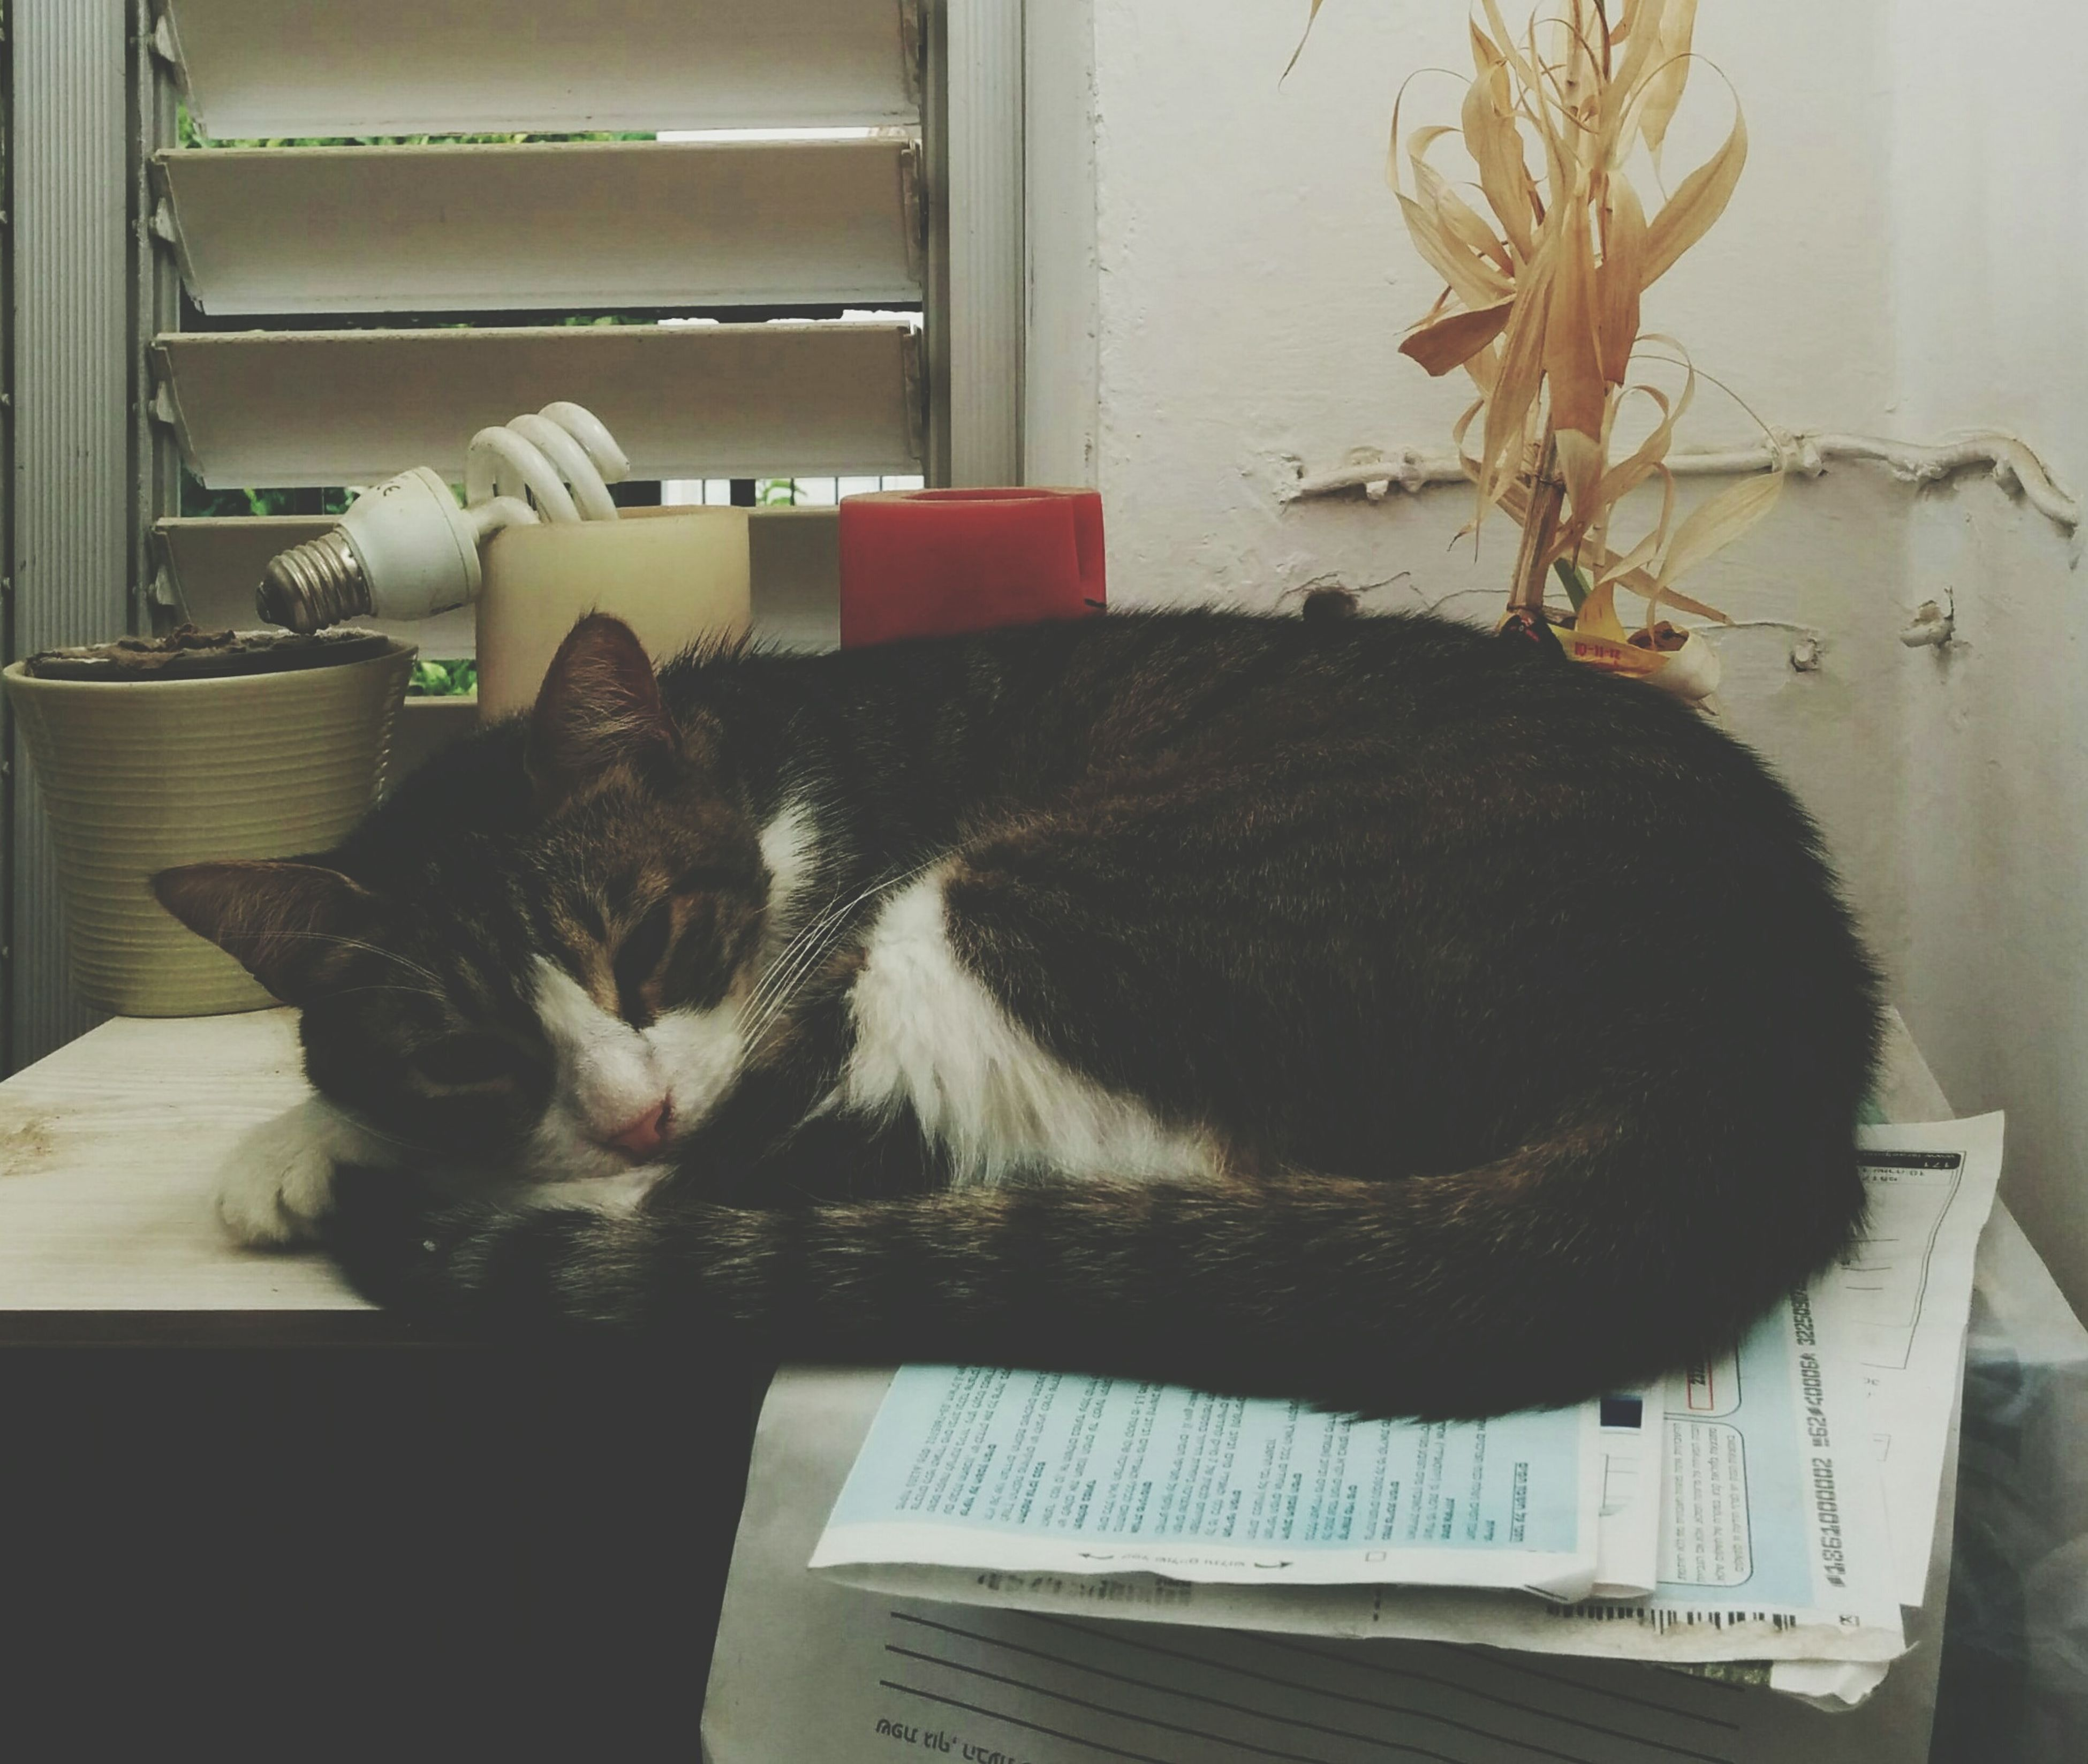 domestic animals, pets, animal themes, one animal, mammal, indoors, domestic cat, cat, relaxation, feline, home interior, resting, lying down, window, sleeping, home, house, sofa, at home, chair